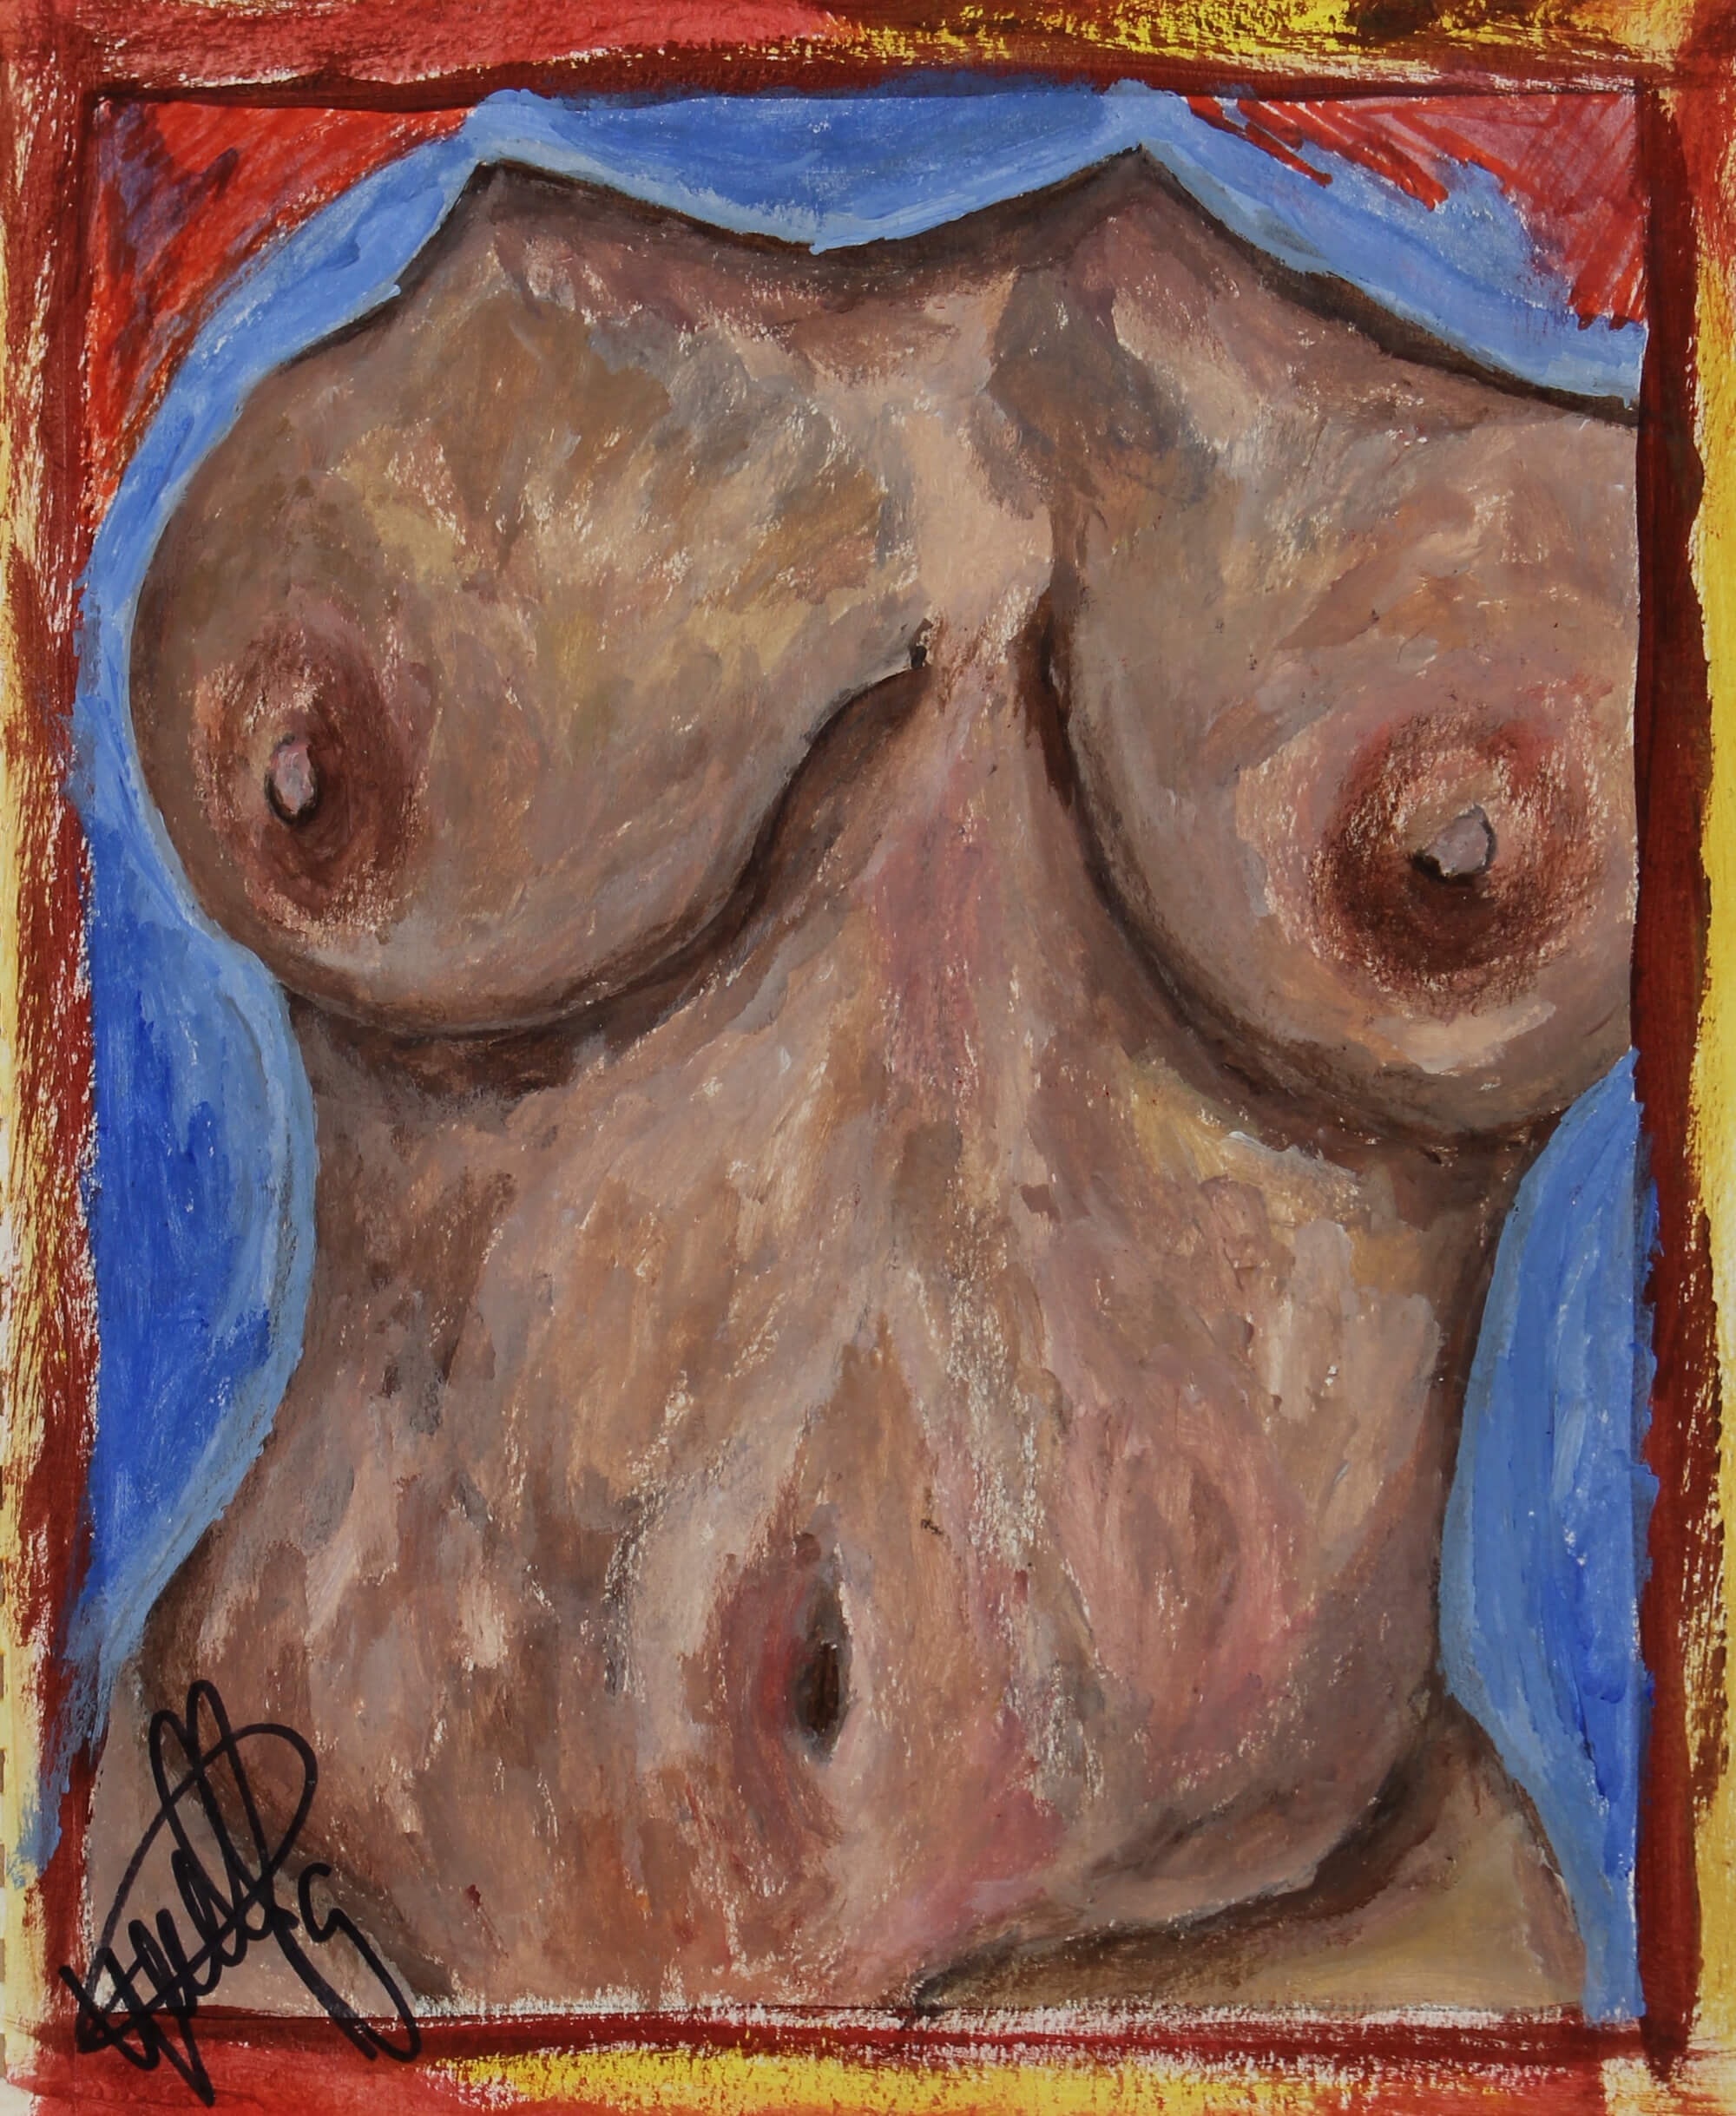 Acrylic painting of the torso of a dark skin, busty female shown through a painted yellow and red frame by Kyhan Yael